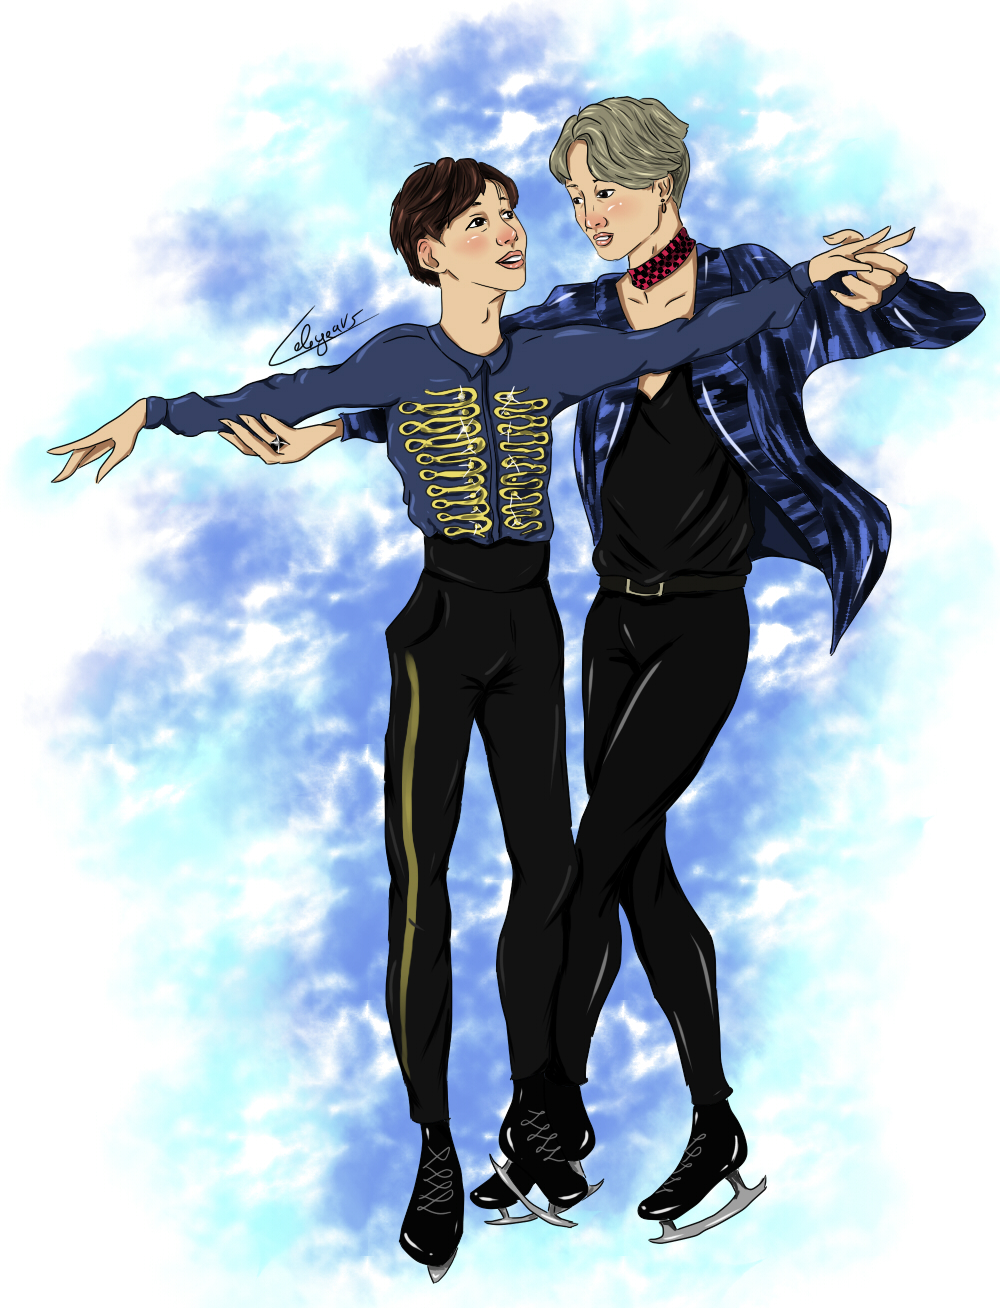 My Favorite Anime Ships as well Jessadoodles deviantart likewise Yuri On Ice together with 23379384 Yuri Ayato together with Yoonmin On Ice 693142362. on yuri ice 09